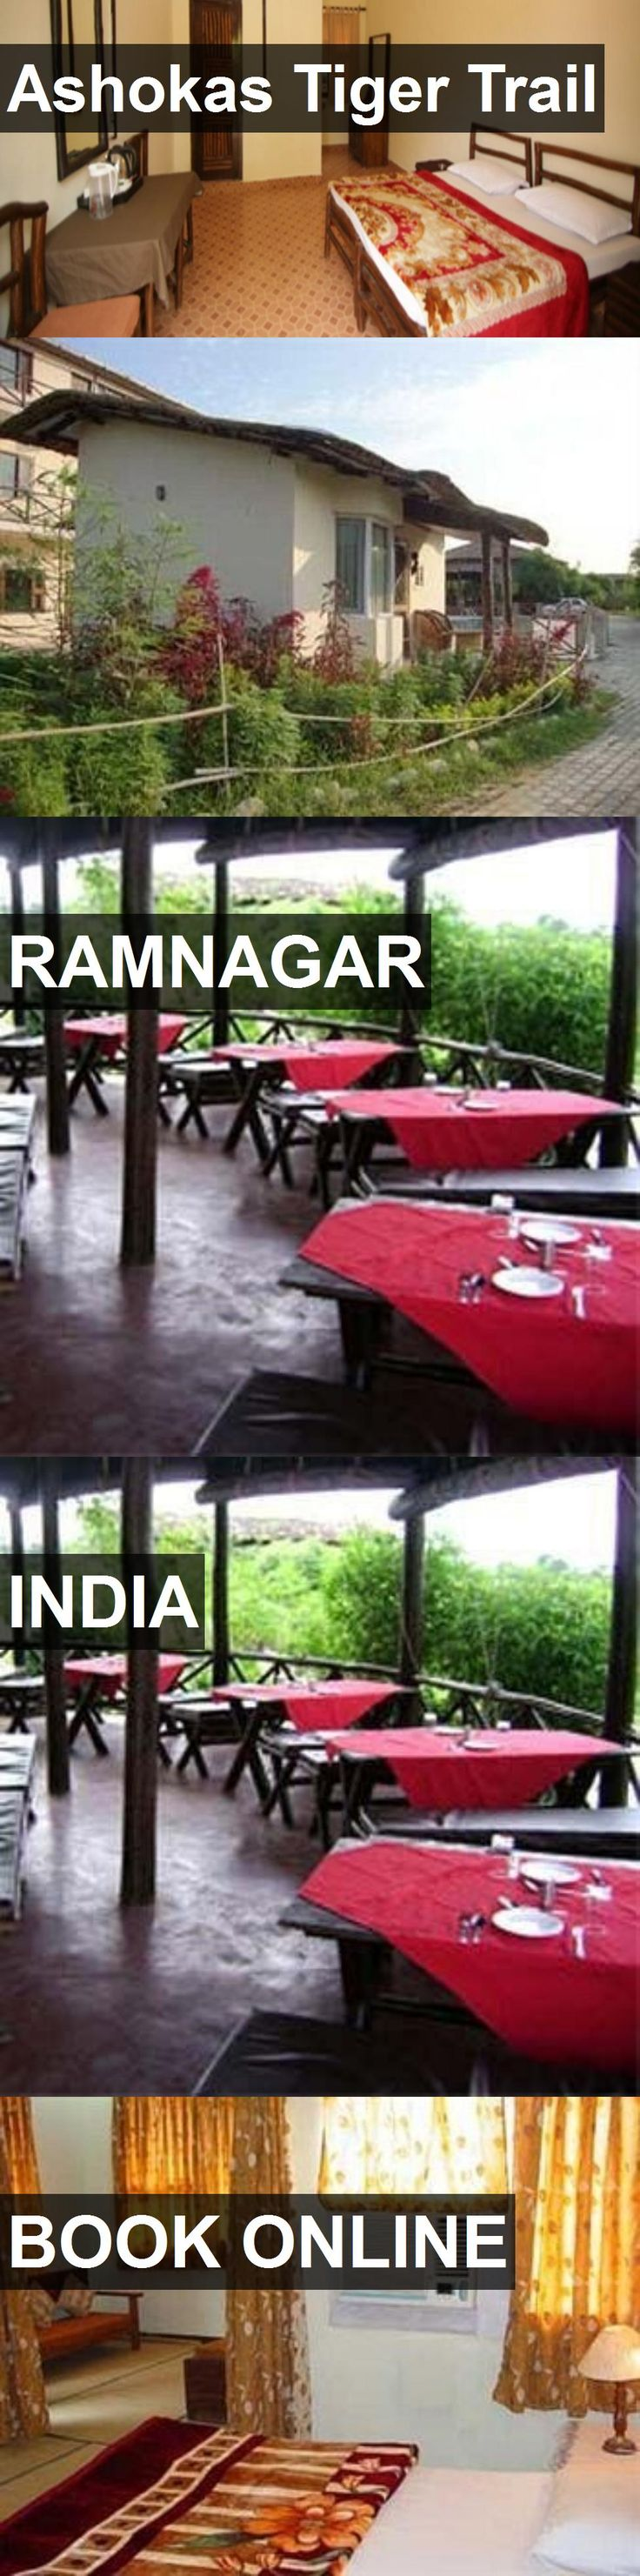 Hotel Ashokas Tiger Trail in Ramnagar, India. For more information, photos, reviews and best prices please follow the link. #India #Ramnagar #travel #vacation #hotel